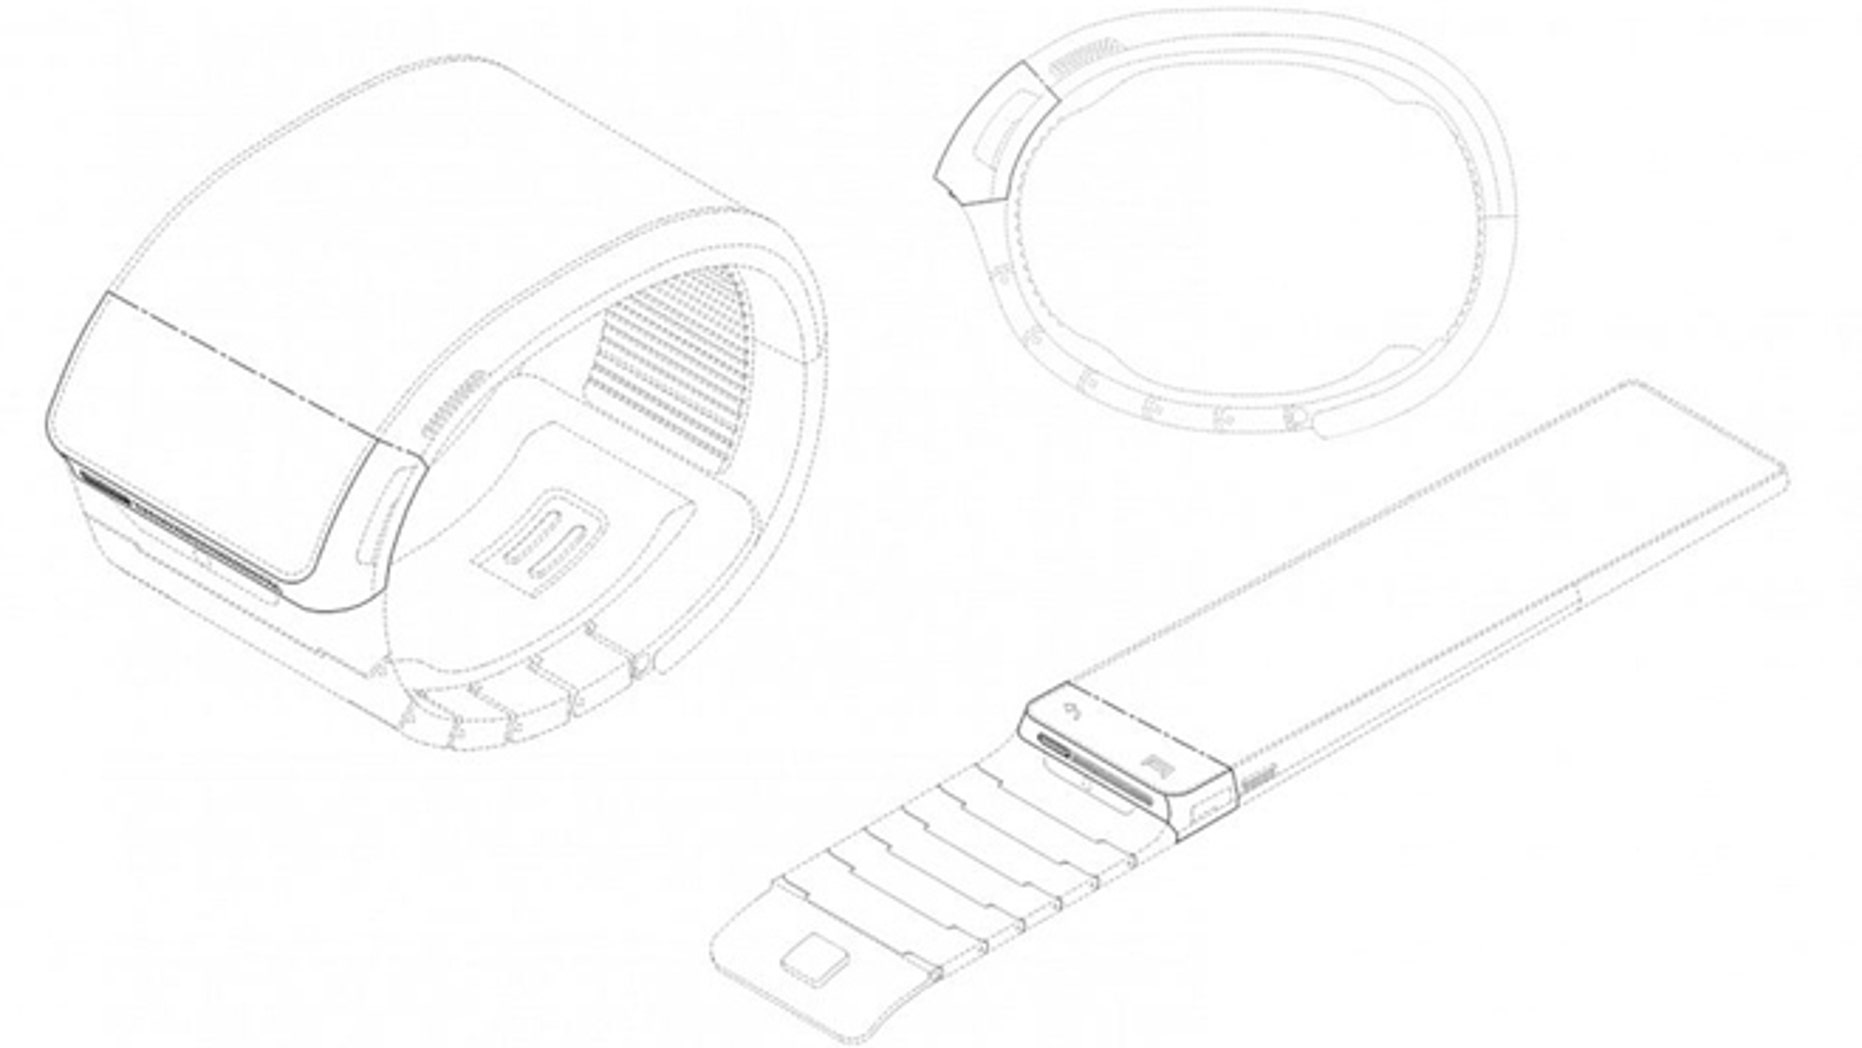 Samsung Electronics Co. has applied for U.S. and South Korean trademarks for a watch that connects to the Internet. (Korean Intellectual Property Office)